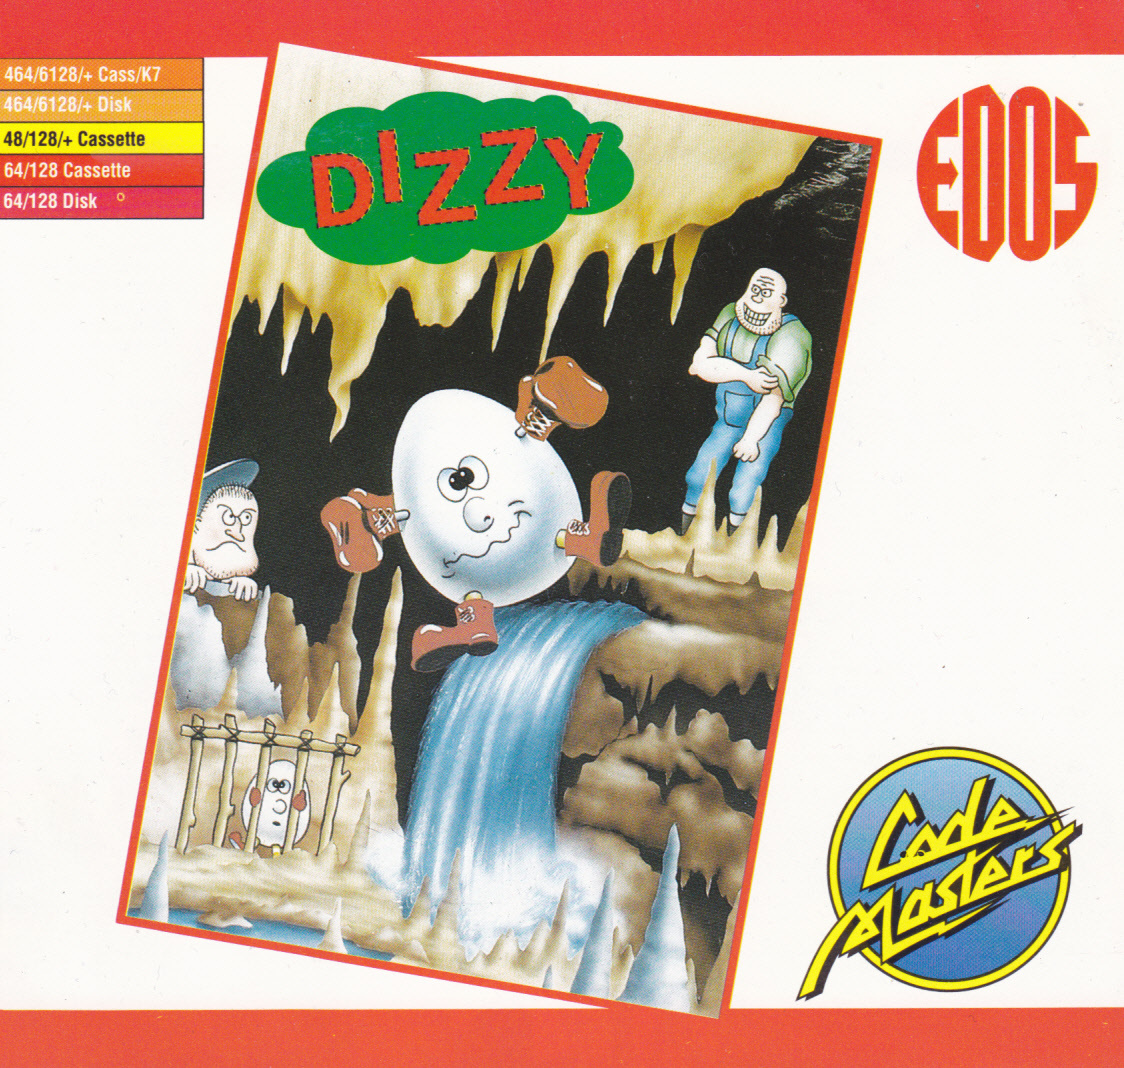 cover of the Amstrad CPC game Dizzy - The Ultimate Cartoon Adventure  by GameBase CPC